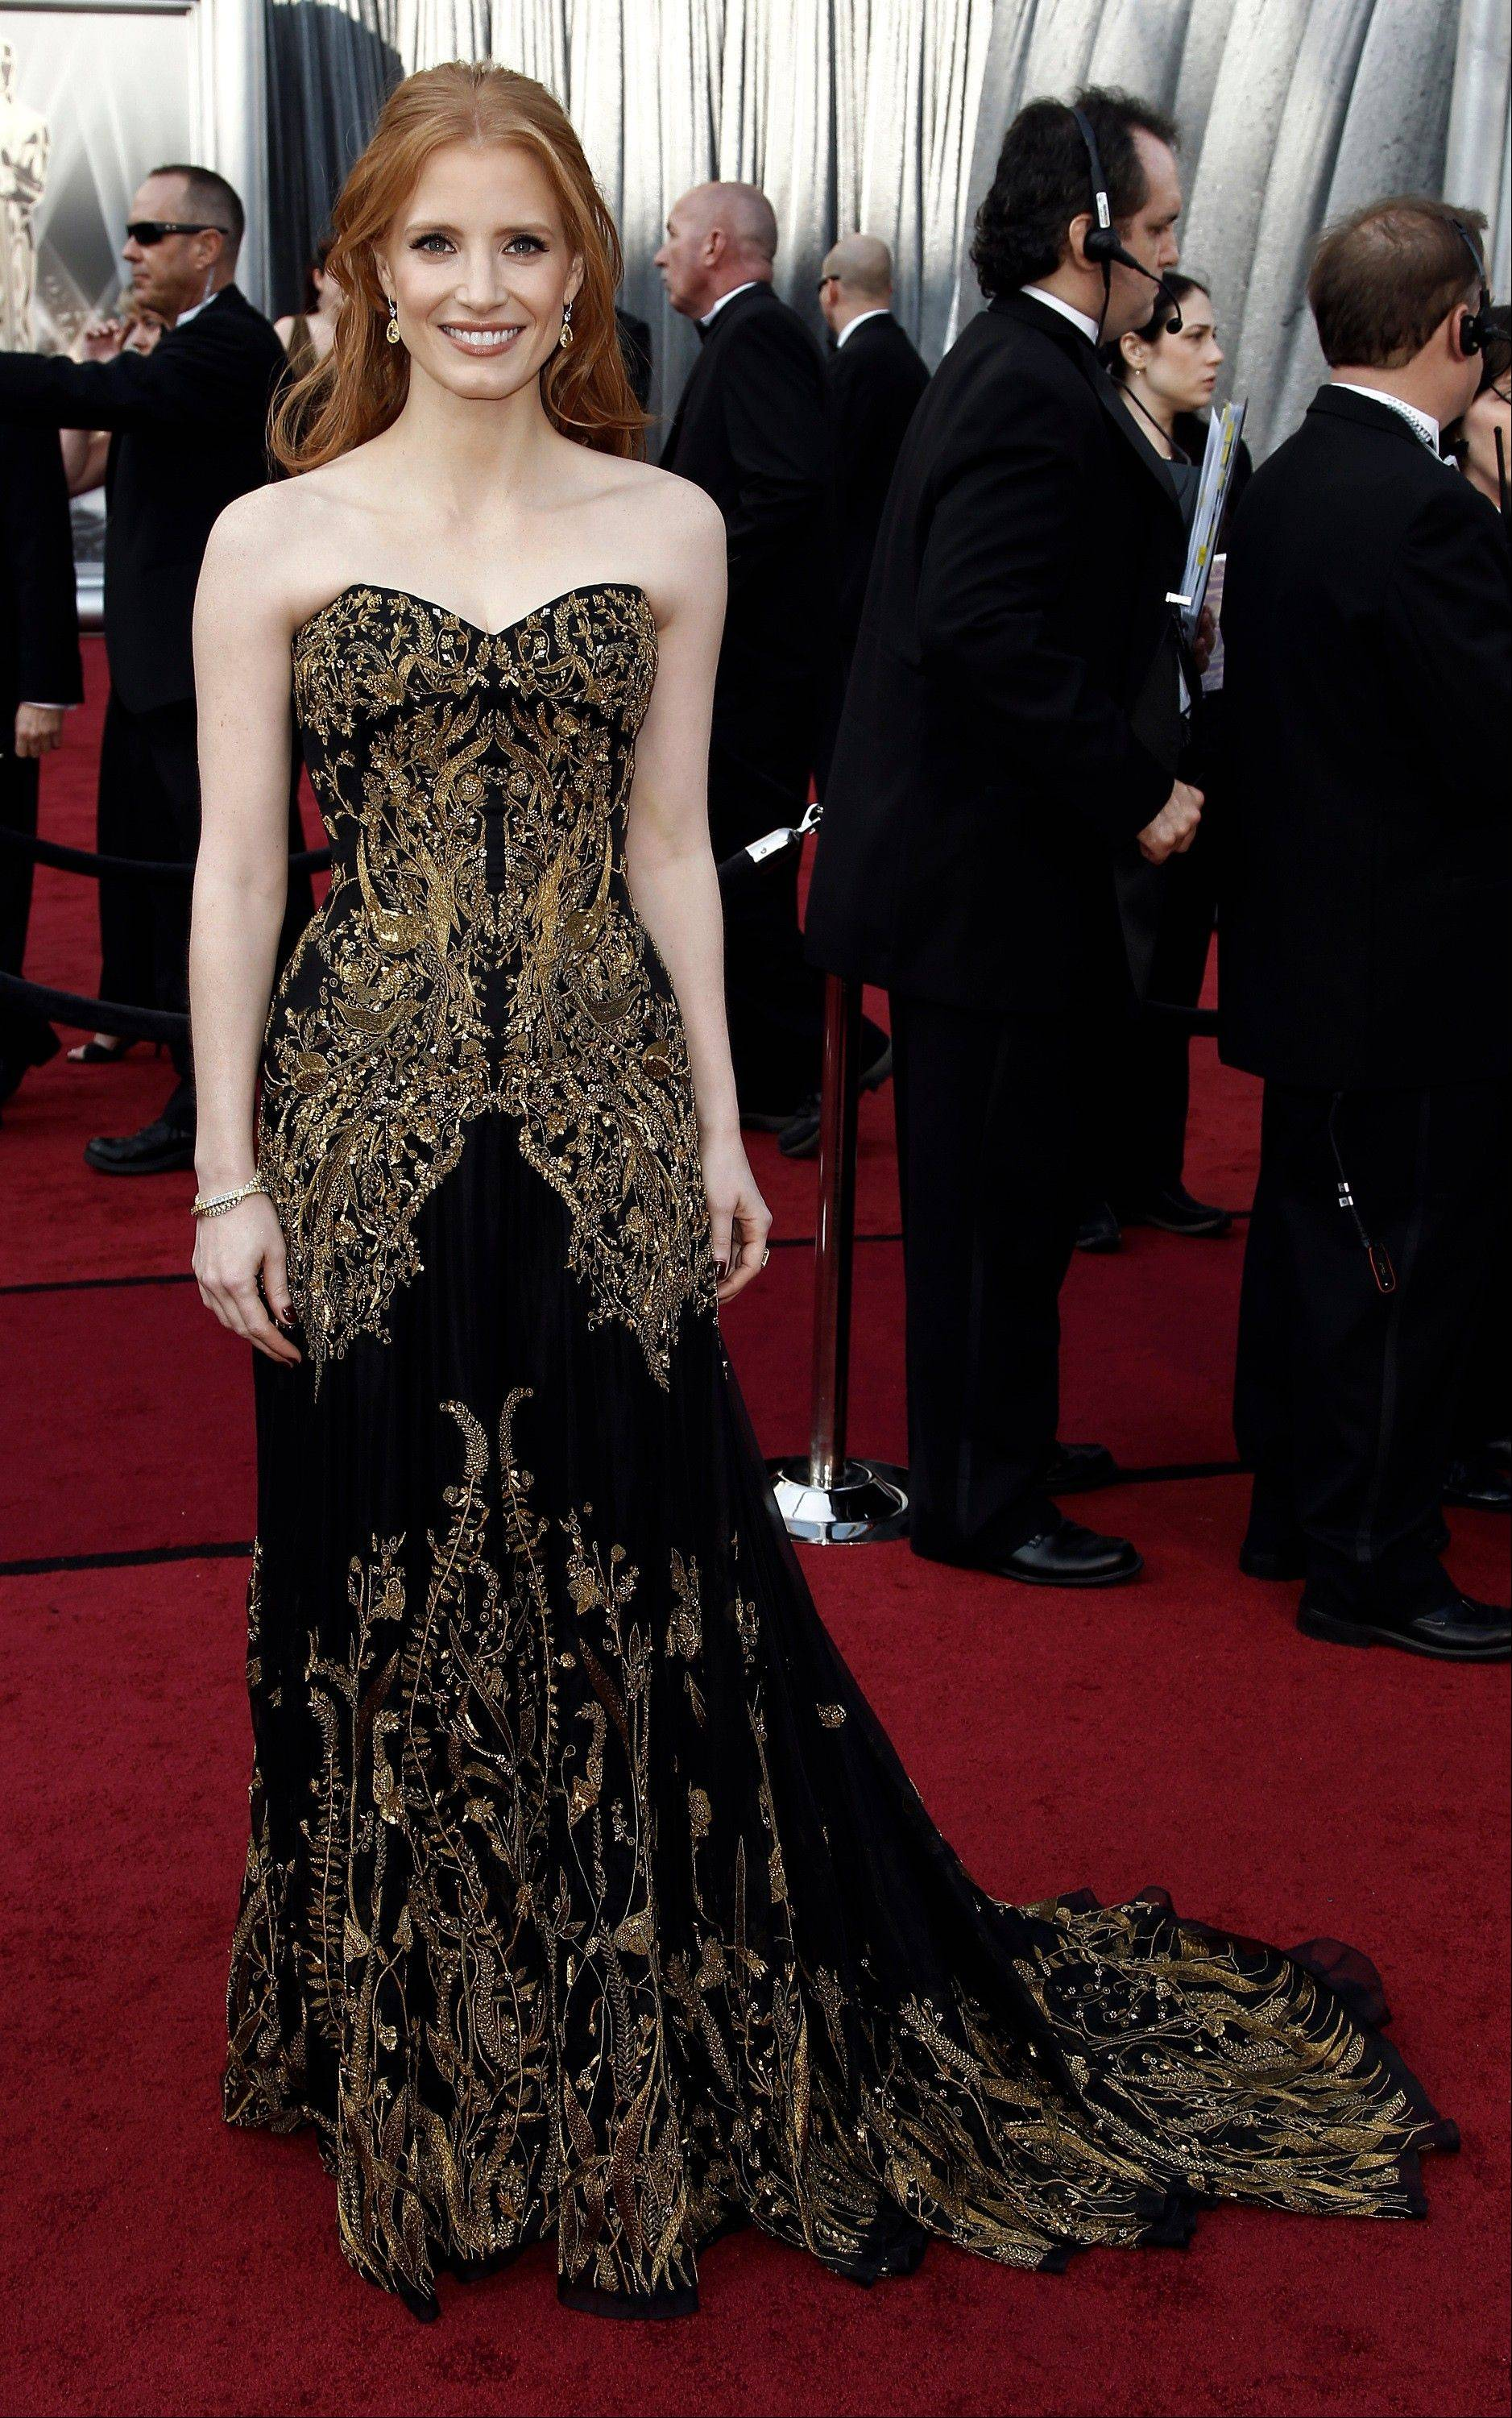 Best Supporting Actress nominee Jessica Chastain wore an embroidered Alexander McQueen gown.